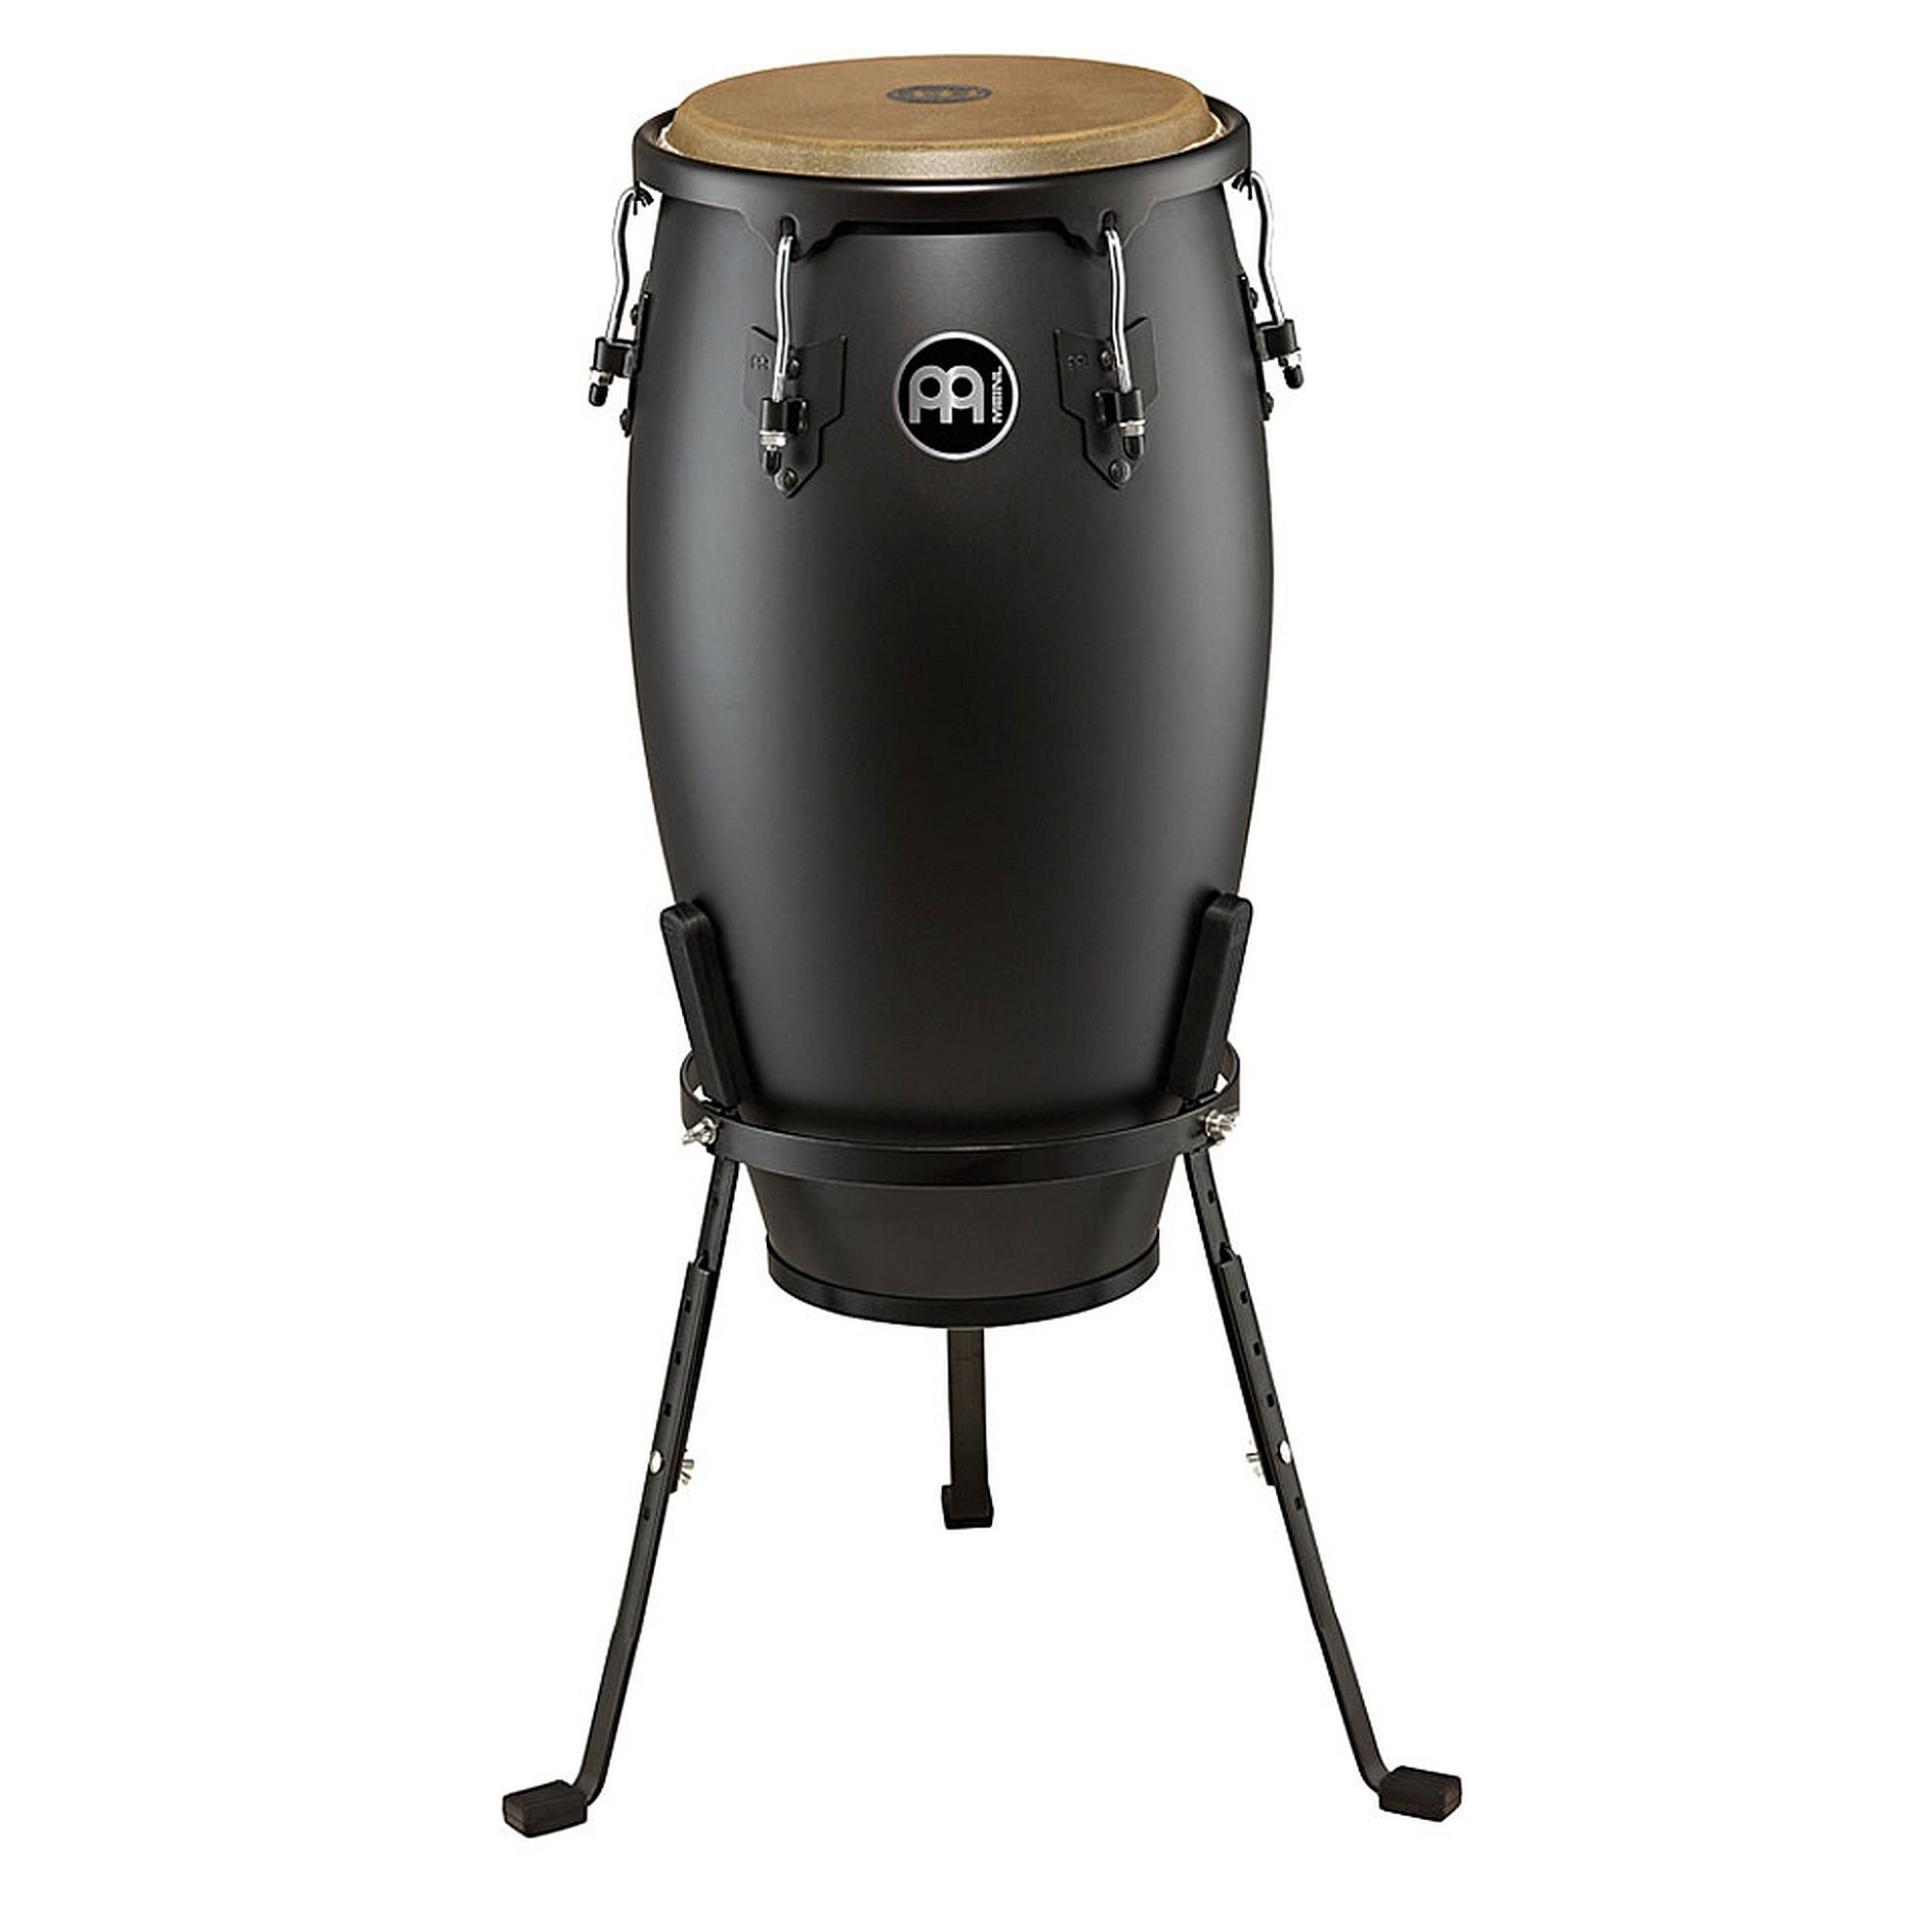 Meinl Percussion HC12PBK-M Headliner Designer Series 12-Inch Conga with Basket Stand, Phantom Black by Meinl Percussion